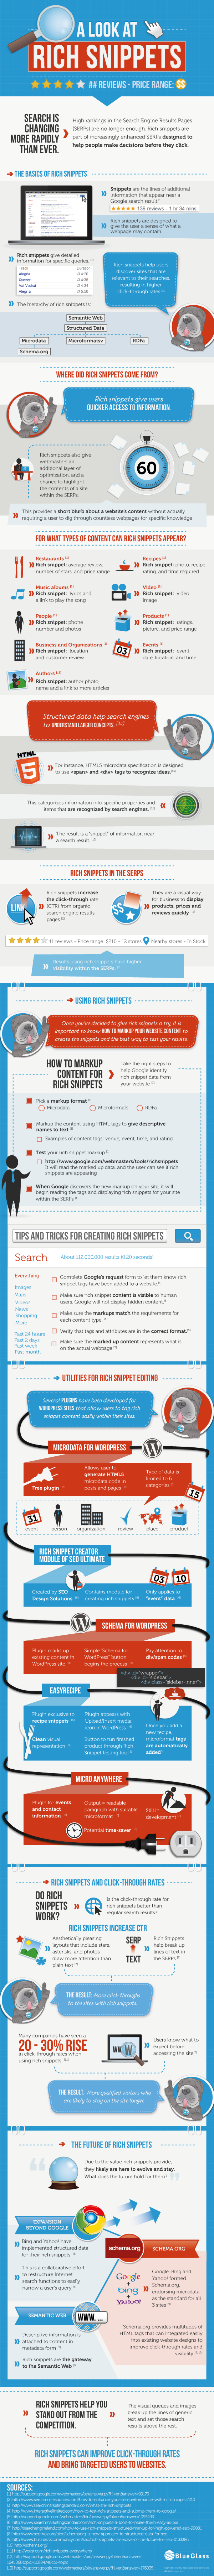 Rich Snippets Guide Infographic